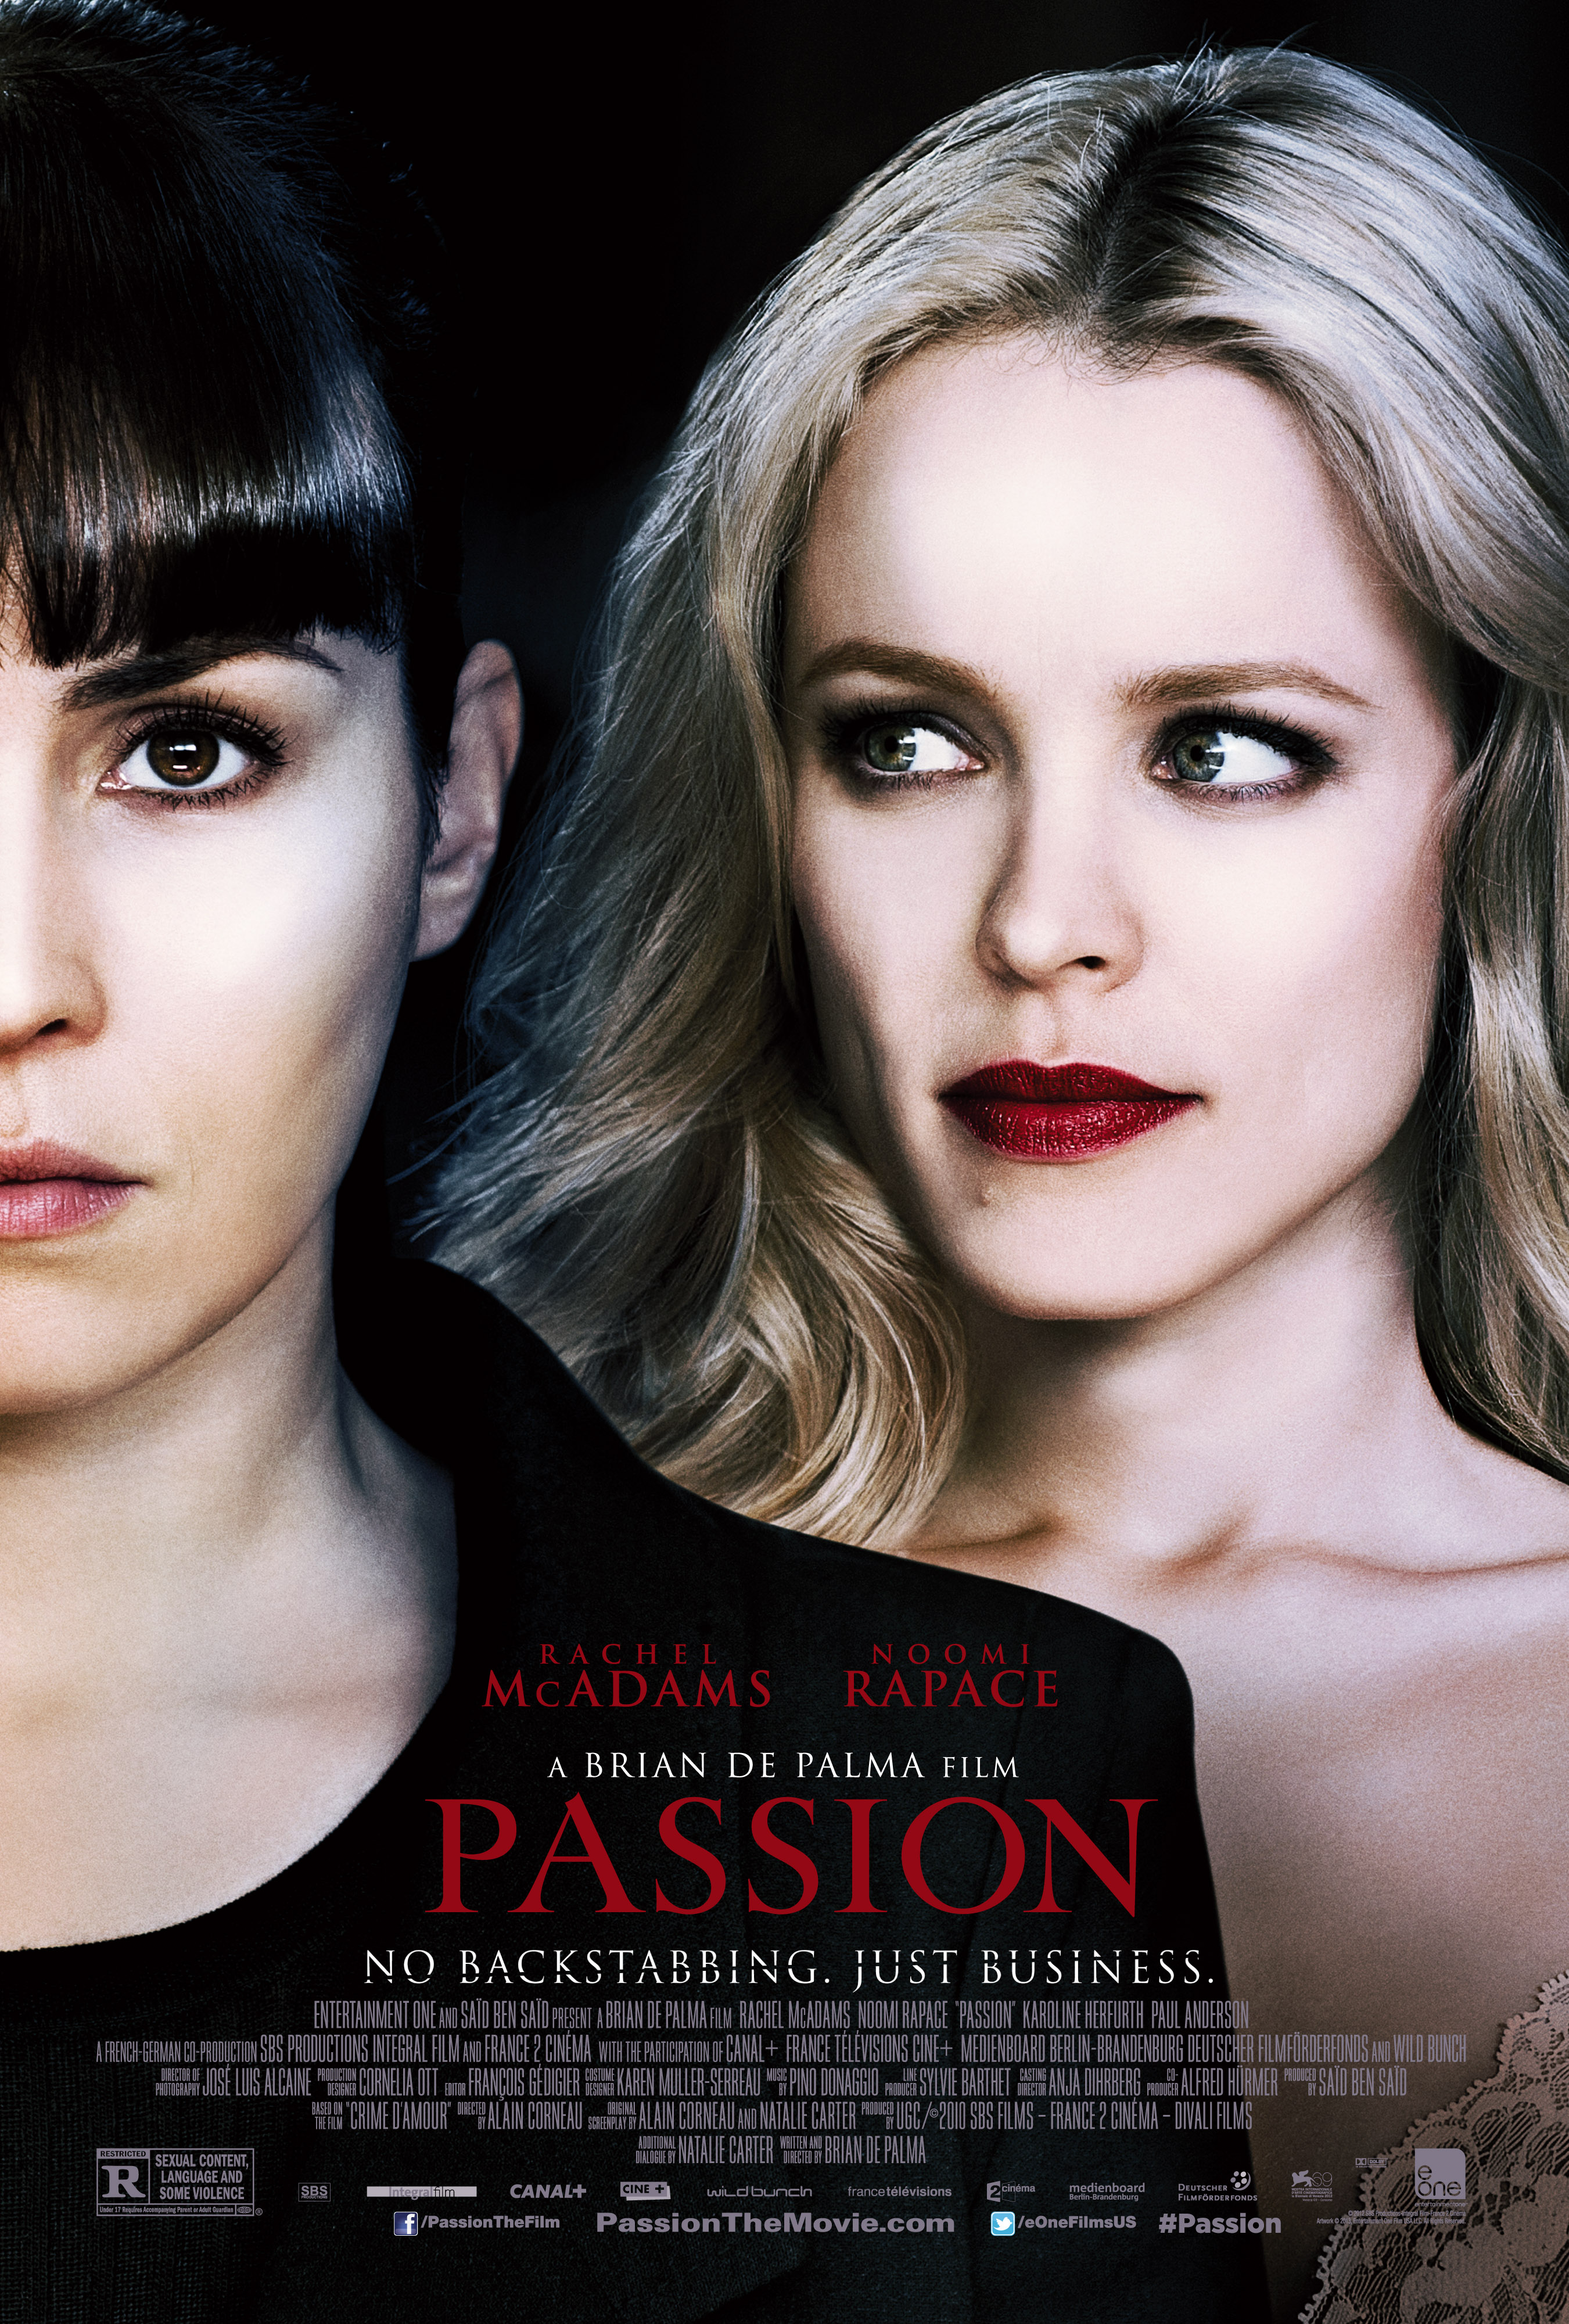 Passion FINAL Exclusive Trailer for Passion Released on IMDB